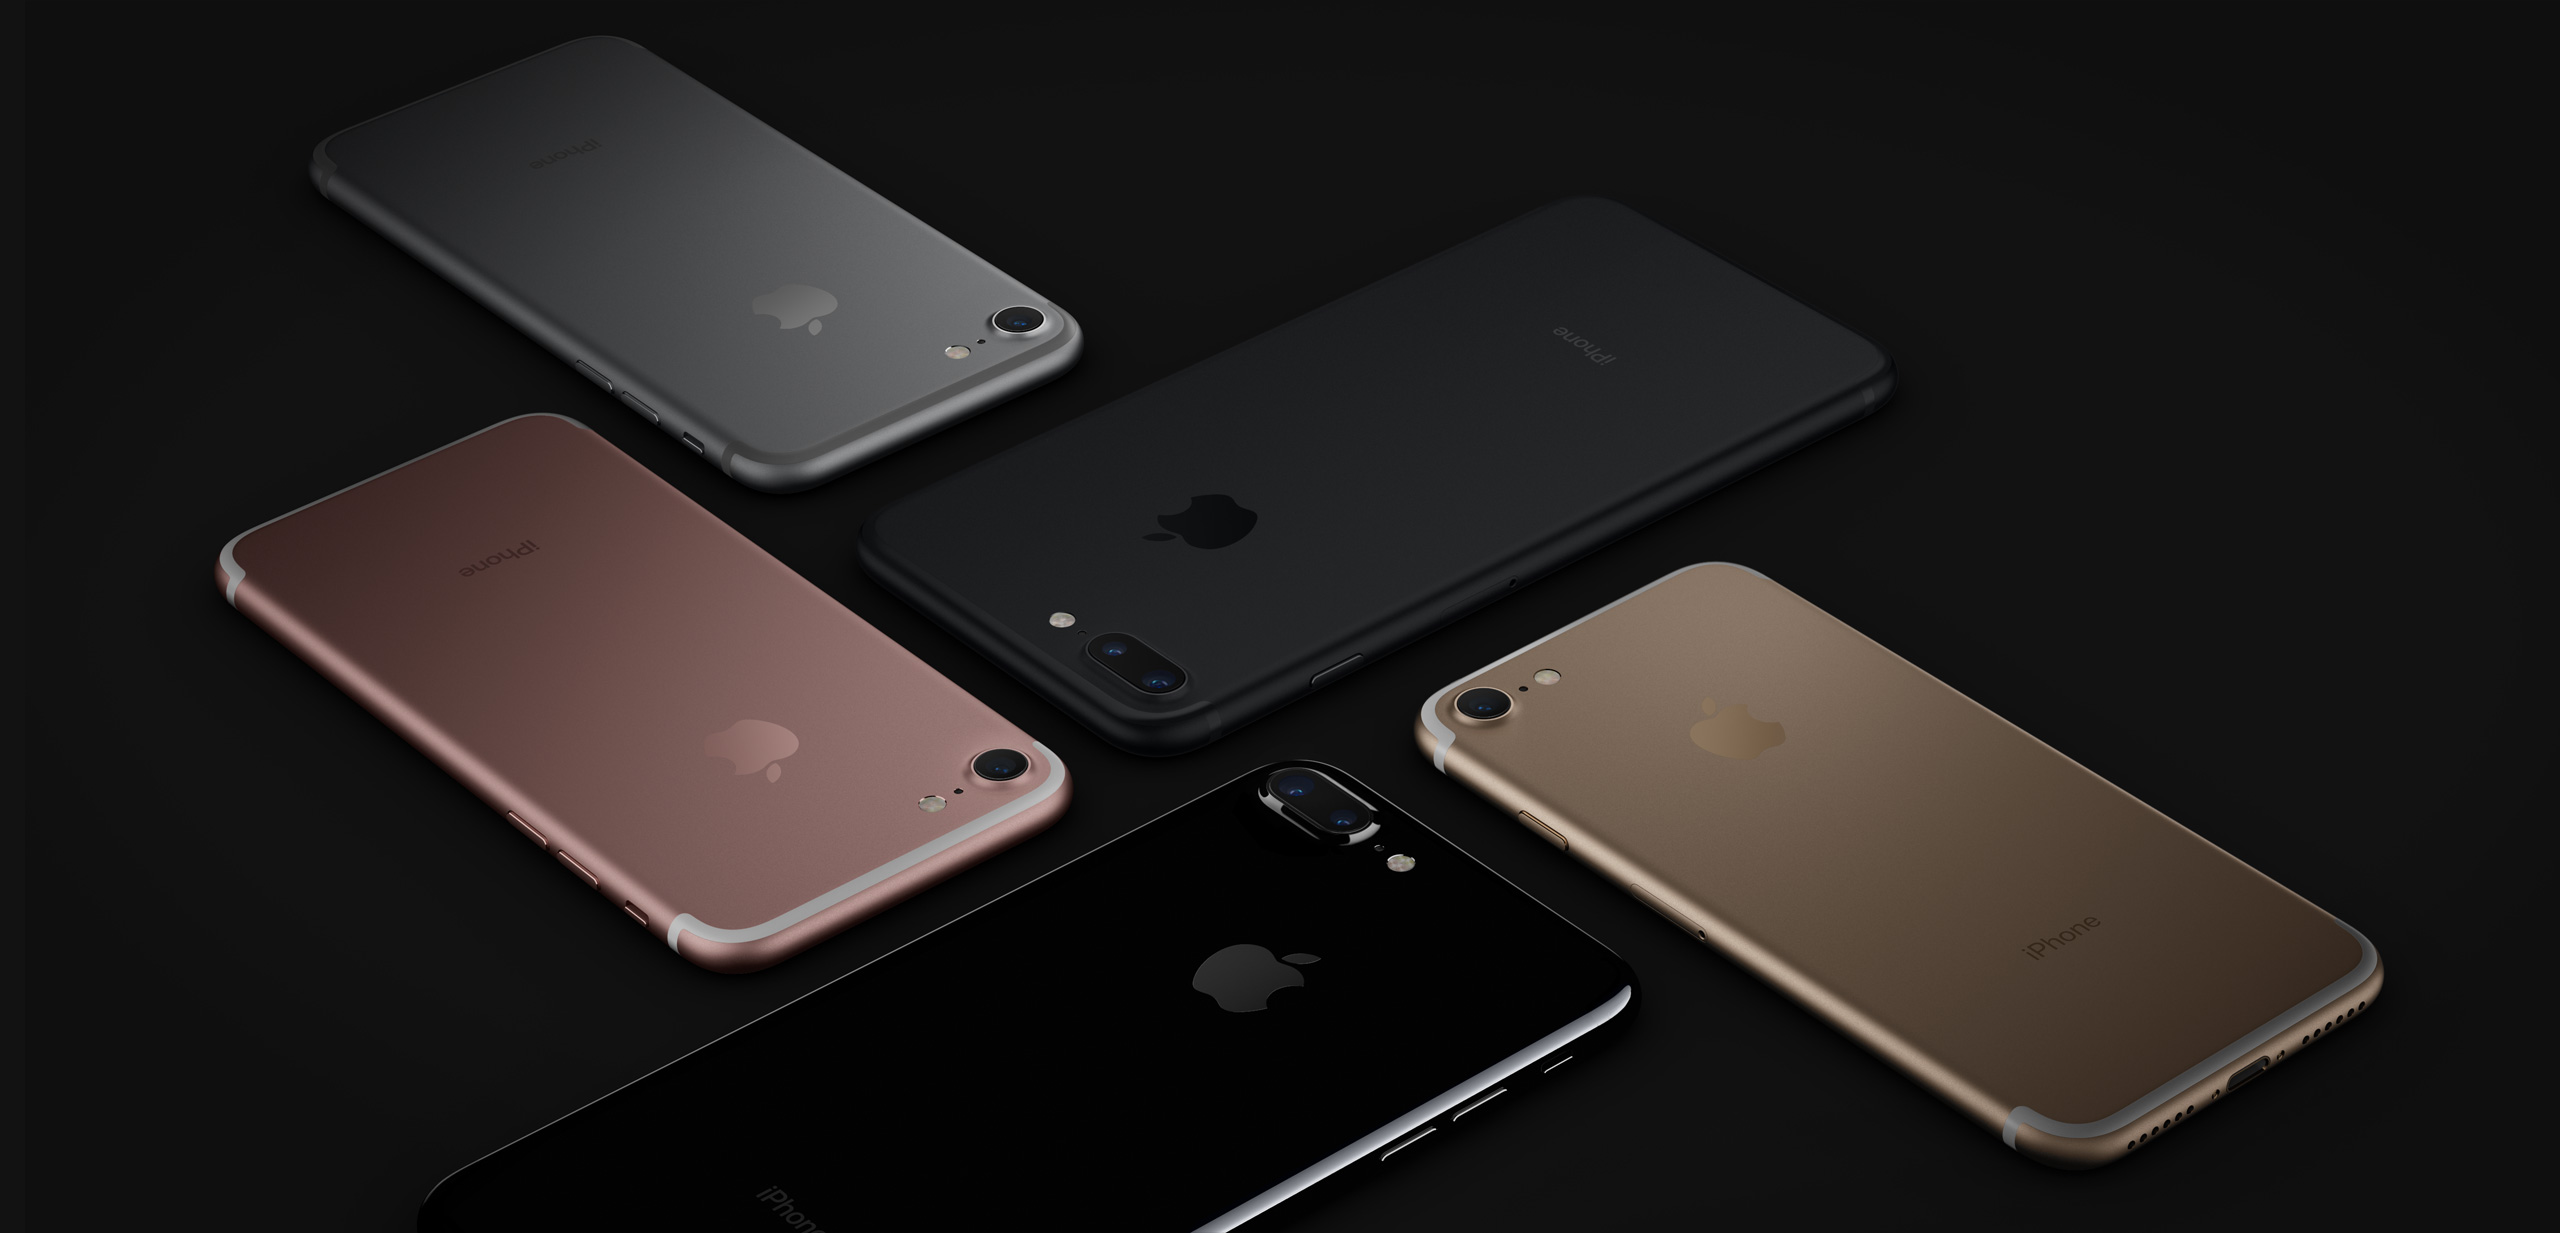 Apple-iPhone-7-and-iPhone-7-Plus-images